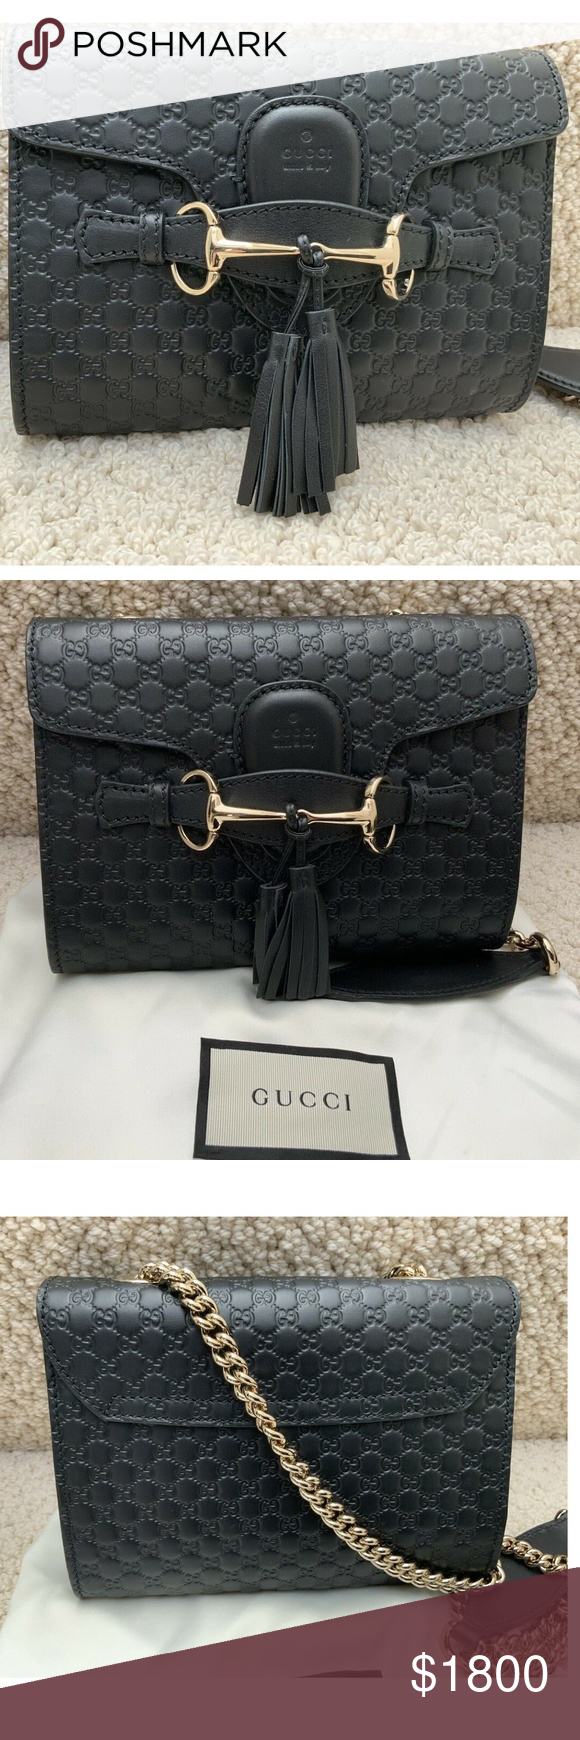 adc5f70b637 GUCCI Emily Small Microguccissima Leather Shoulder Authentic new with tags  gucci Crossbody Brand  Gucci Condition